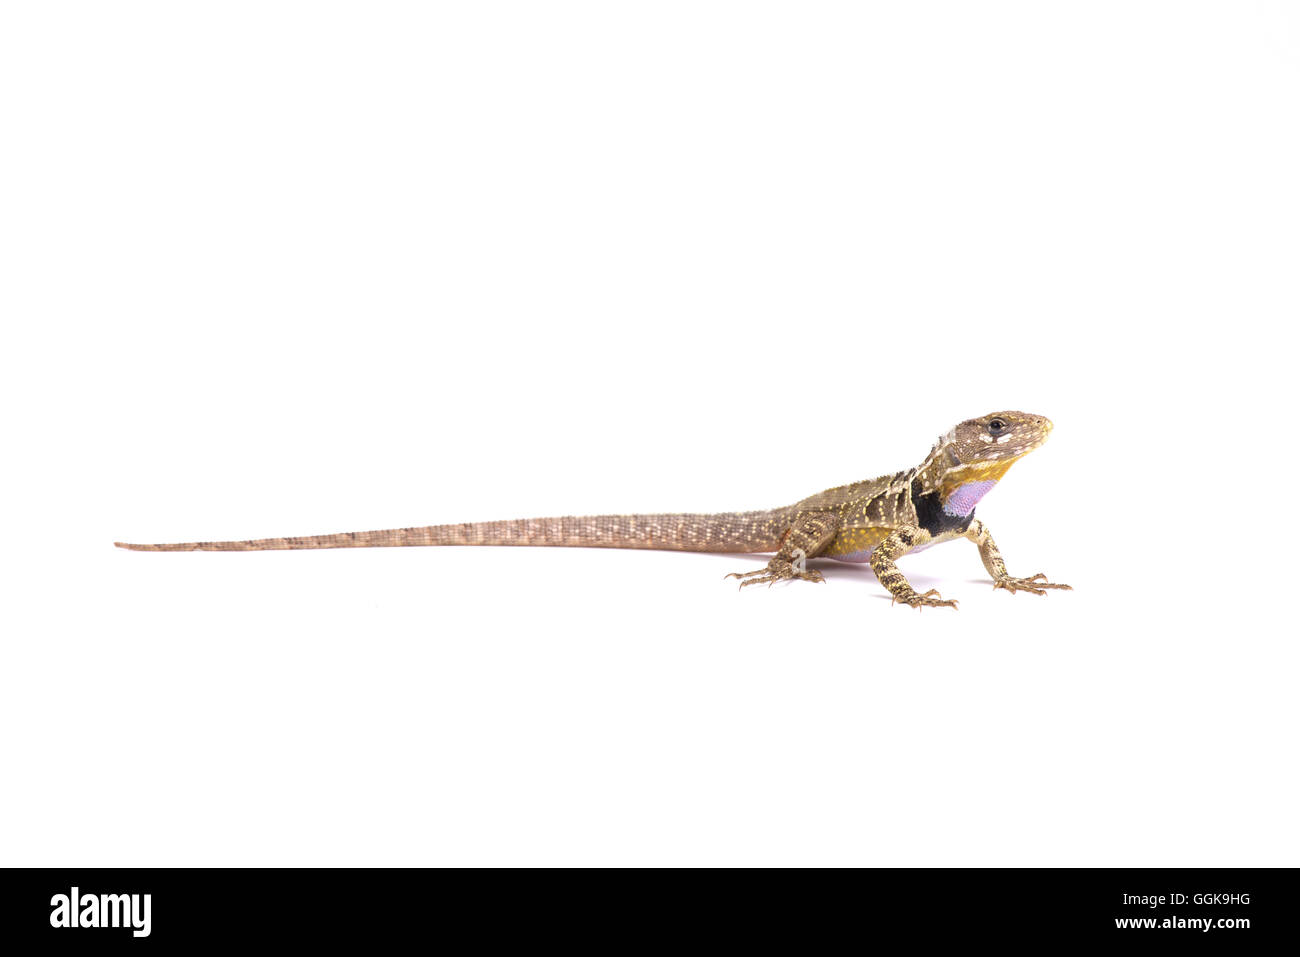 Lézard à gorge violet péruvienne (Stenocercus imitateur) Photo Stock